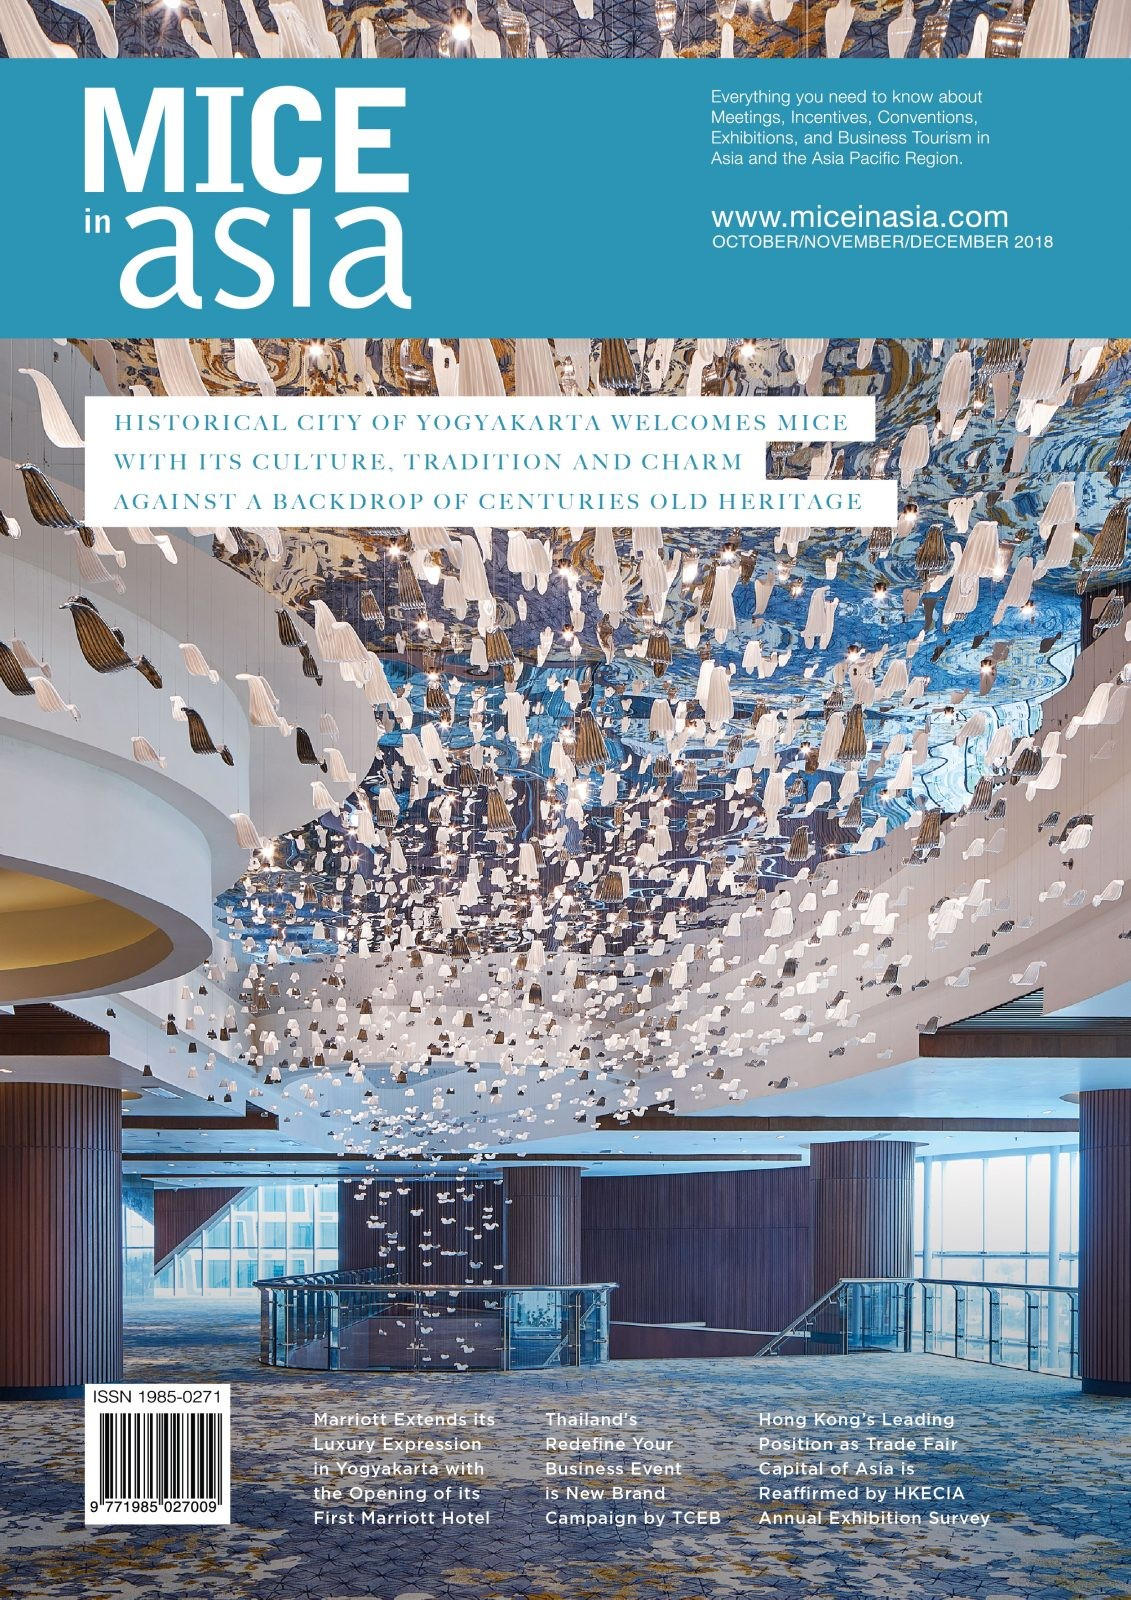 MICE In Asia – Meeting Incentives Conventions Exhibitions in ASIA